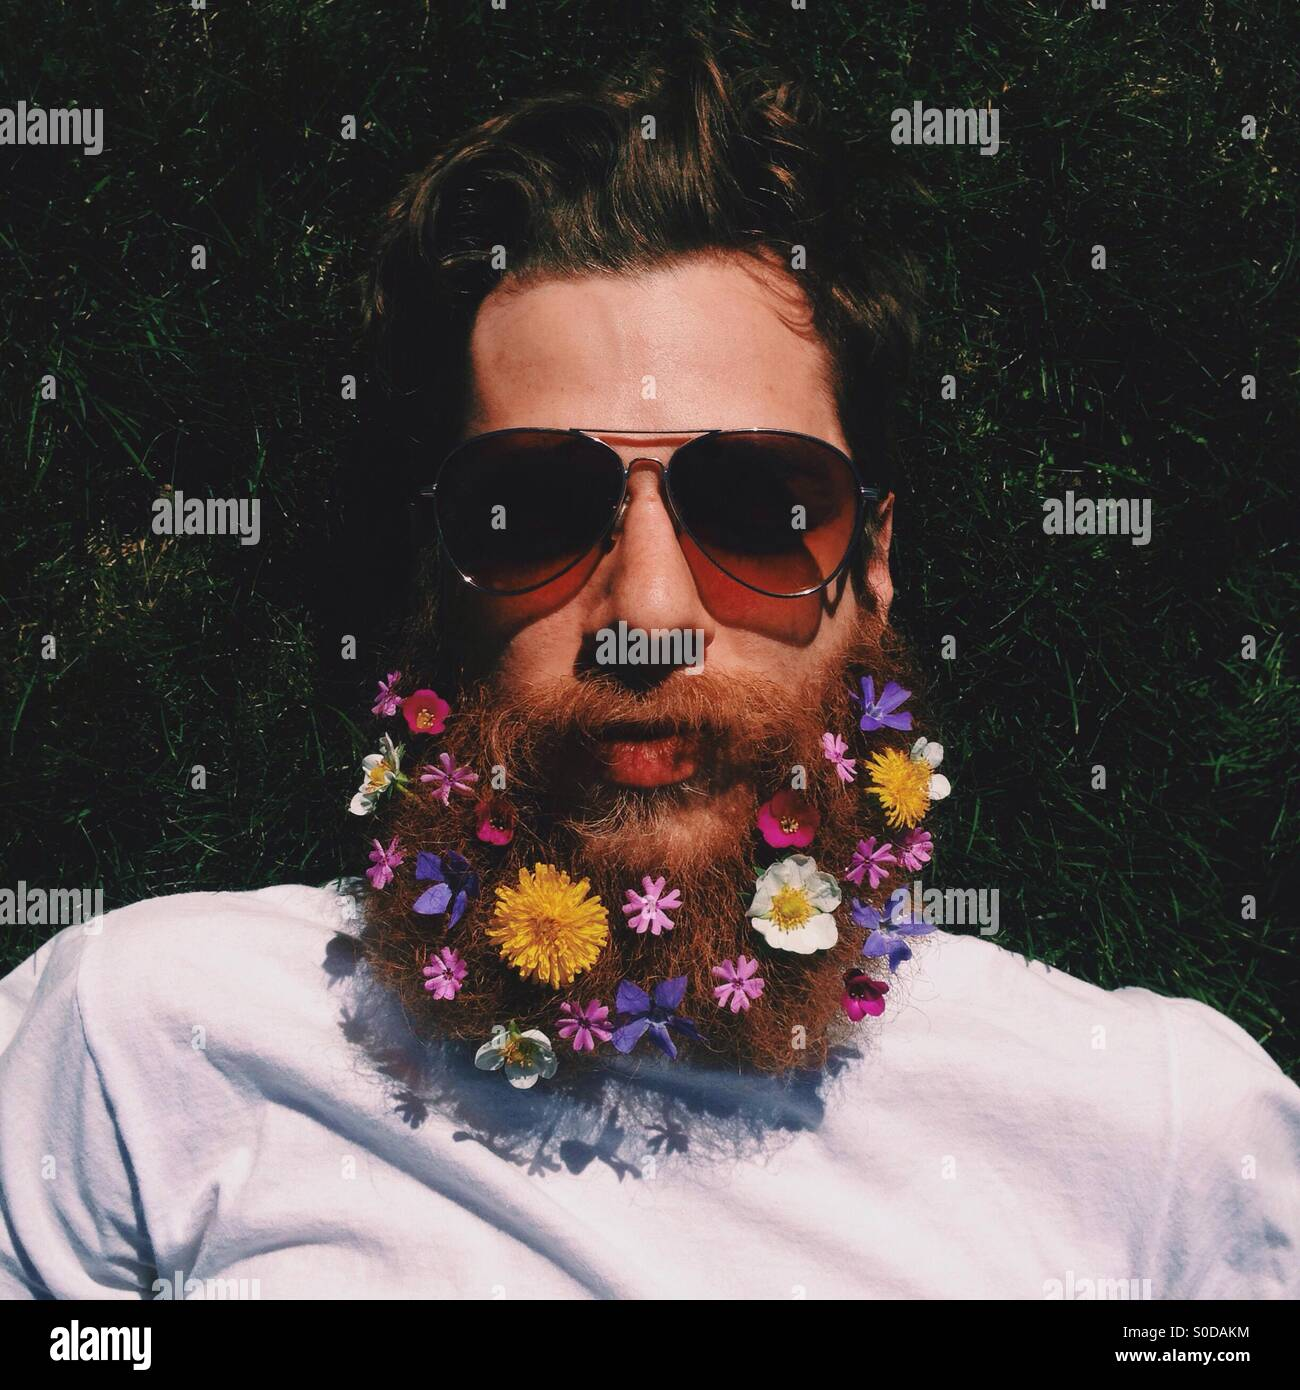 Flower Beard - Stock Image